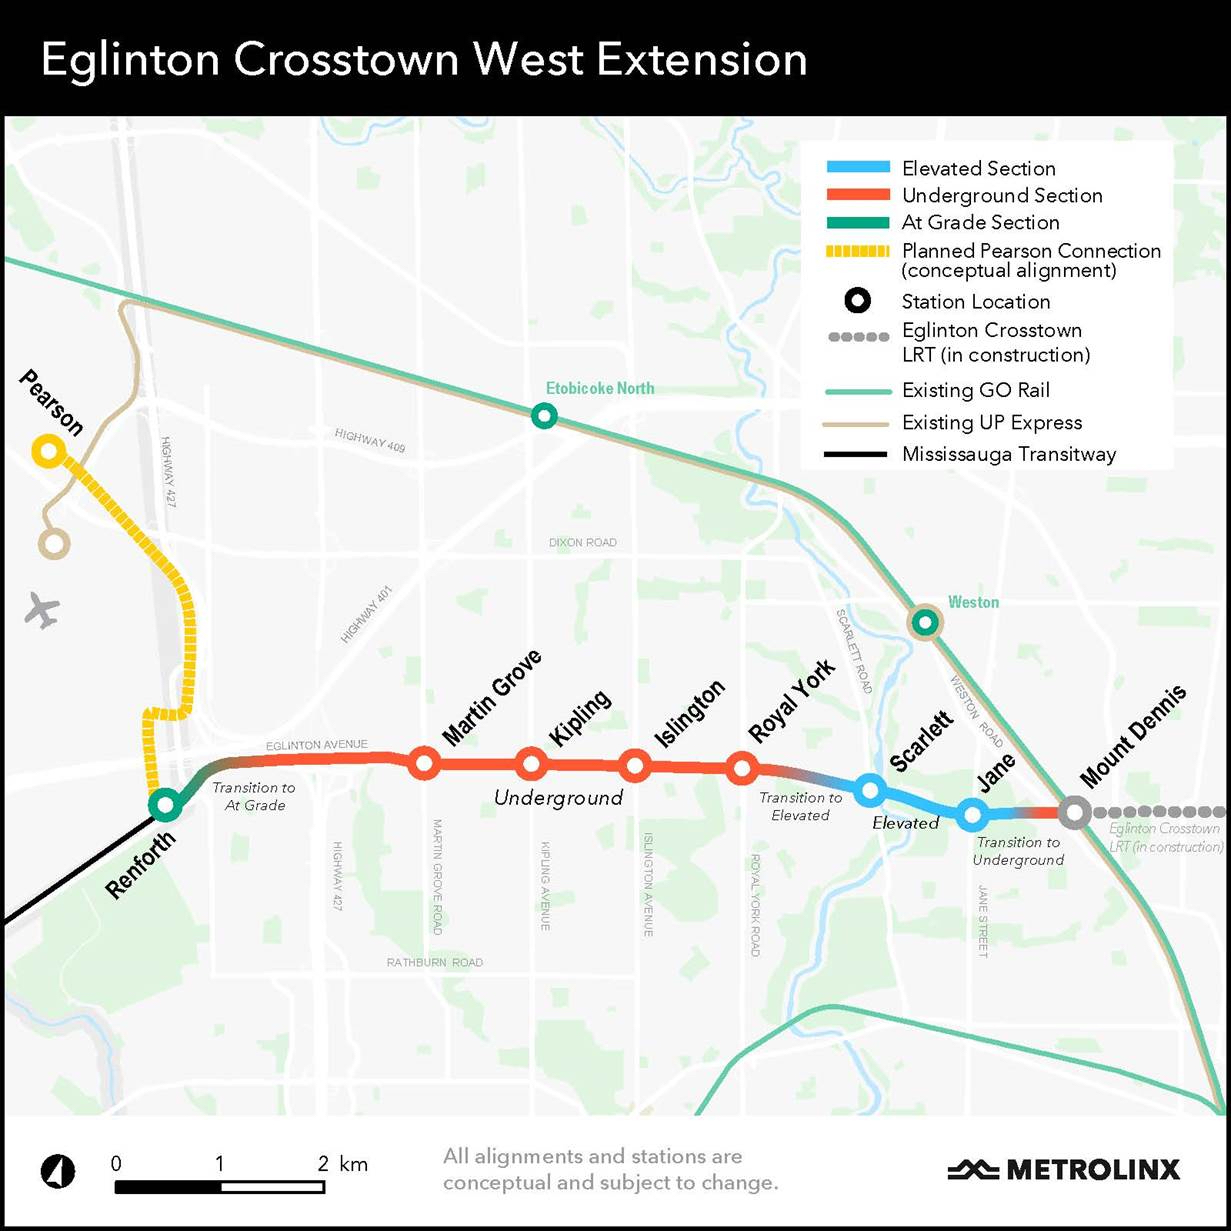 This map shows the current planned Eglinton Crosstown West Extension subway line and approximate locations of the proposed stations. All alignments/stations are conceptual and subject to change. This new subway line is proposed to include elevated and underground sections. Based on the conceptual alignment, the two terminus stations would be at Mount Dennis (interchange with a future GO station) in the east and Renforth in the west. Going from east to west, the map shows the subway line travelling underground after Mount Dennis Station (near Black Creek Drive), transitioning west of Weston Road from an underground to an elevated section. The elevated section will allow the line to pass over the Humber River, which is shown on the map. Proposed elevated stations are shown at Jane Street and Scarlett Road. The line transitions from elevated back to underground, approximately half-way between Scarlett and Royal York Roads. The line continues west underneath Eglinton Avenue, with proposed stations at Royal York Road, Islington Avenue, Kipling Avenue, and Martin Grove Road. It will end at a partially-underground station near Renforth Avenue. The map also shows a Planned Pearson Connection conceptual alignment, which would travel north from Renforth Station up to a proposed station near Pearson International Airport. It is shown to be in a different location than the current UP Express Station at Pearson Airport Terminal 1. For reference purposes, the map also shows major highways, main streets and natural landmarks (rivers, valleys) in the background, as well as the existing GO and UP Express rail lines and stations, the existing Mississauga Transitway (which will connect to Renforth Station), and the future Eglinton Crosstown Light Rail Transit which is currently under construction. For further details, please visit the following Metrolinx webpage: http://www.metrolinx.com/en/greaterregion/projects/eglinton-crosstown-west.aspx